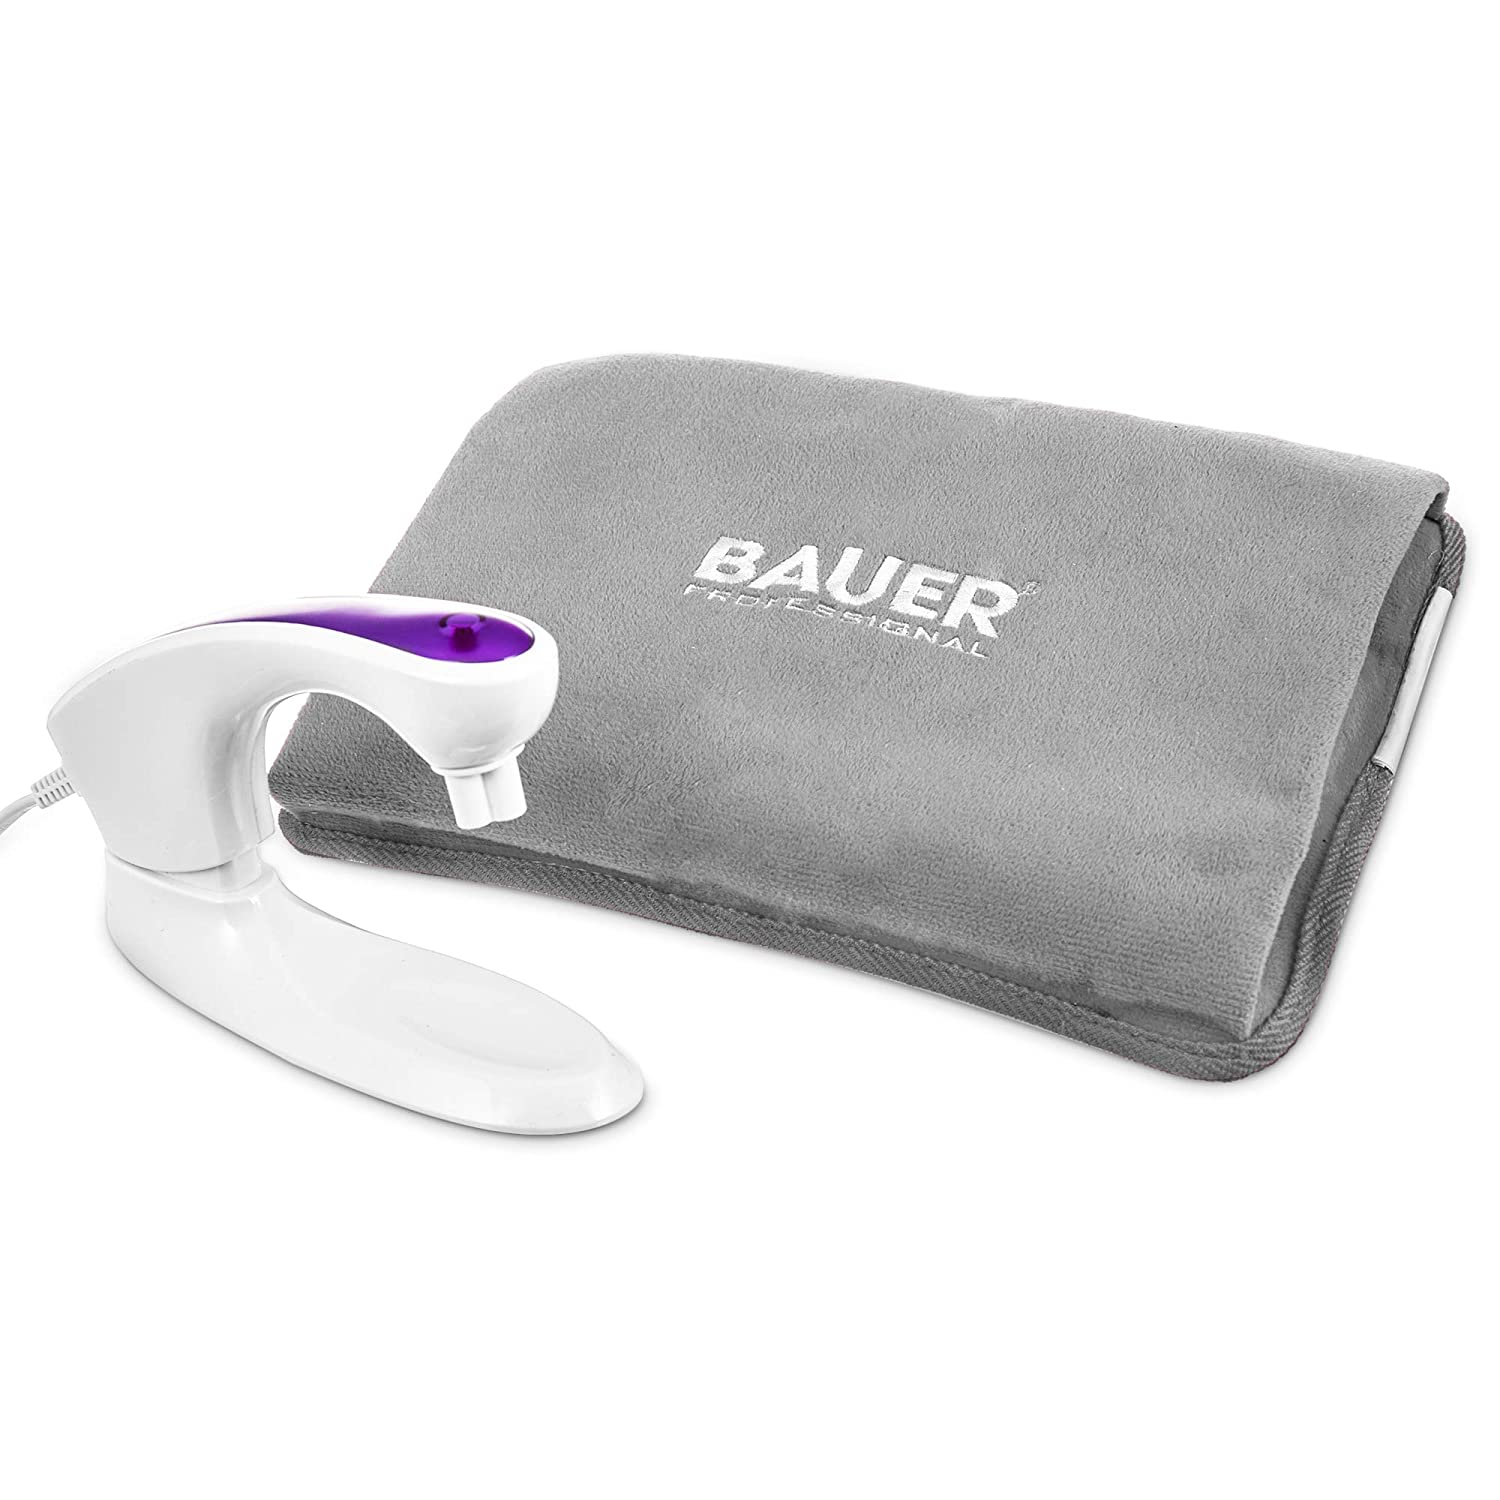 Hand Warmer Massaging Heat Pad with Soft Touch Hand Pouch Cover Soothing Aches /& Back Pain 15 Minutes to Charge Lilac - Purple Pre Filled Fineway Rechargeable Electric Hot Water Bottle